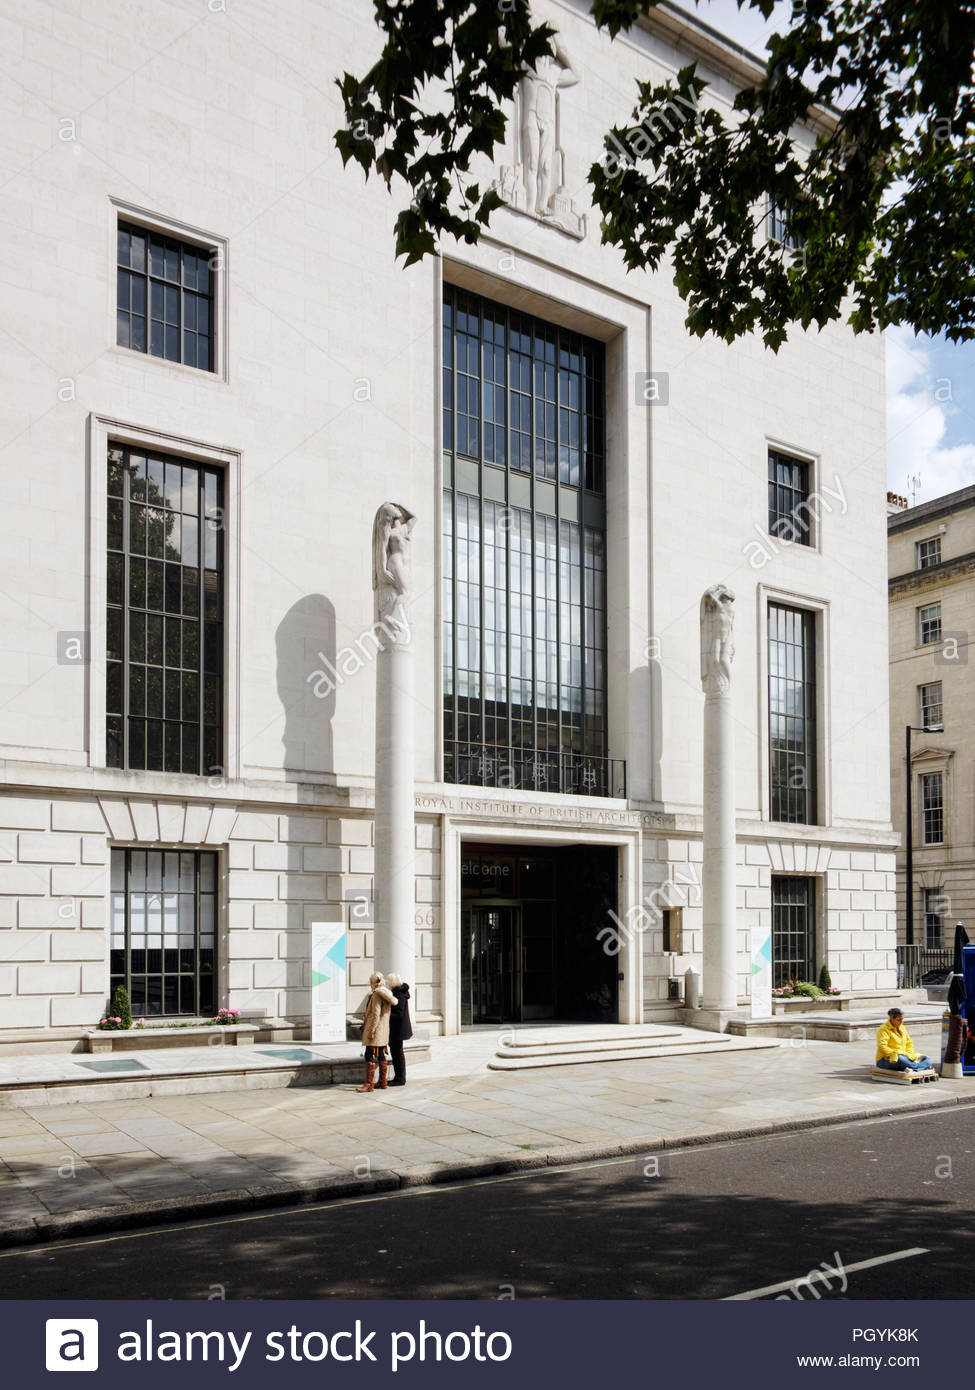 Royal Institute of British Architects building at 66 Portland Place: London. - Stock Image